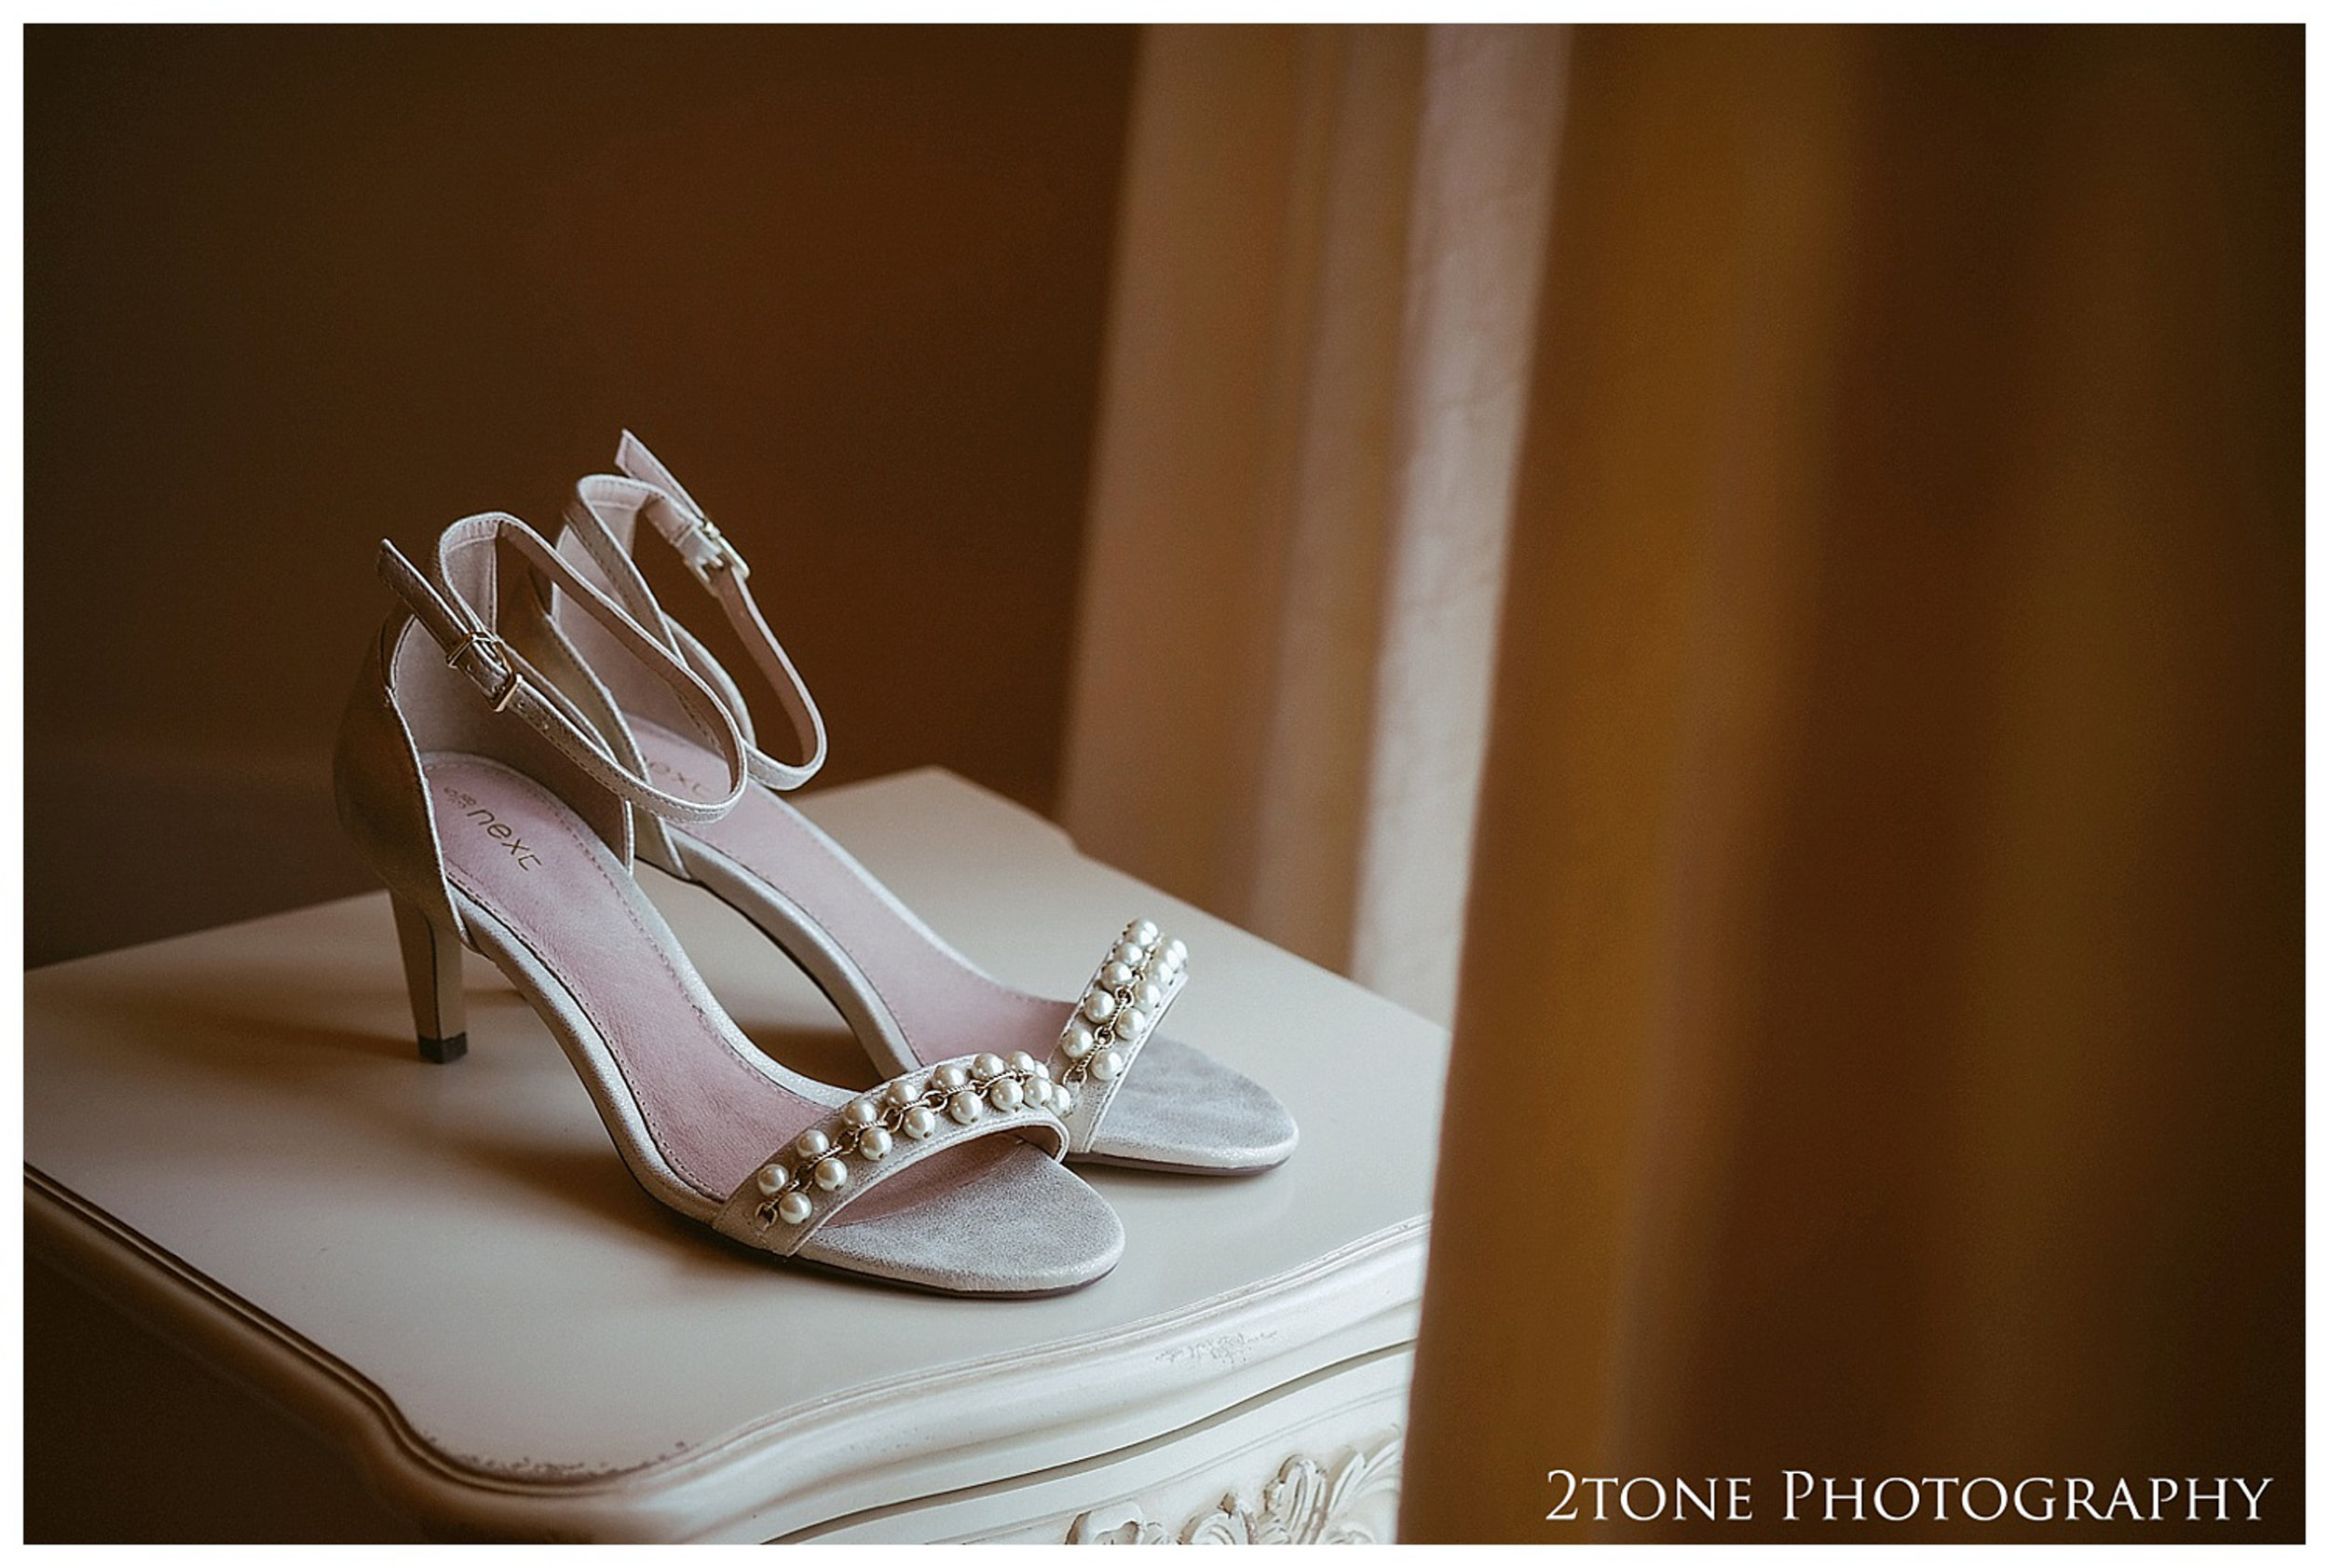 Bridal preparations.  Eshott Hall wedding photographs by wedding photographers based in Durham and the North East.  www.2tonephotography.co.uk.